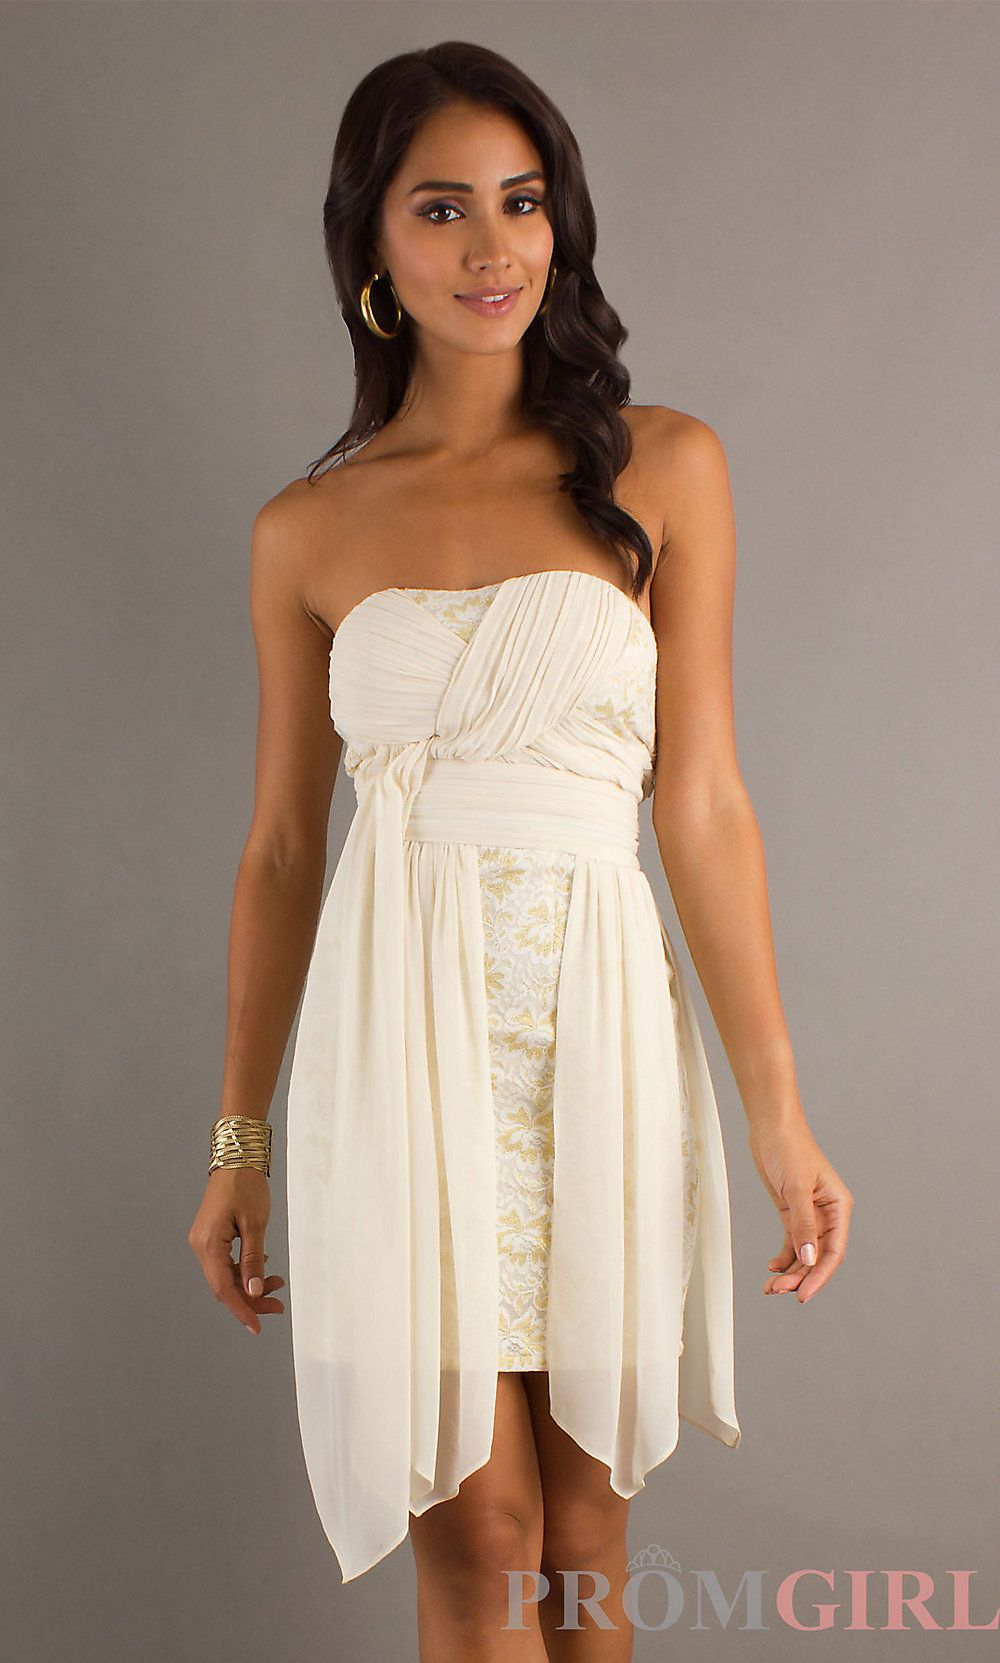 Frontview dress of a different color pinterest dress ideas